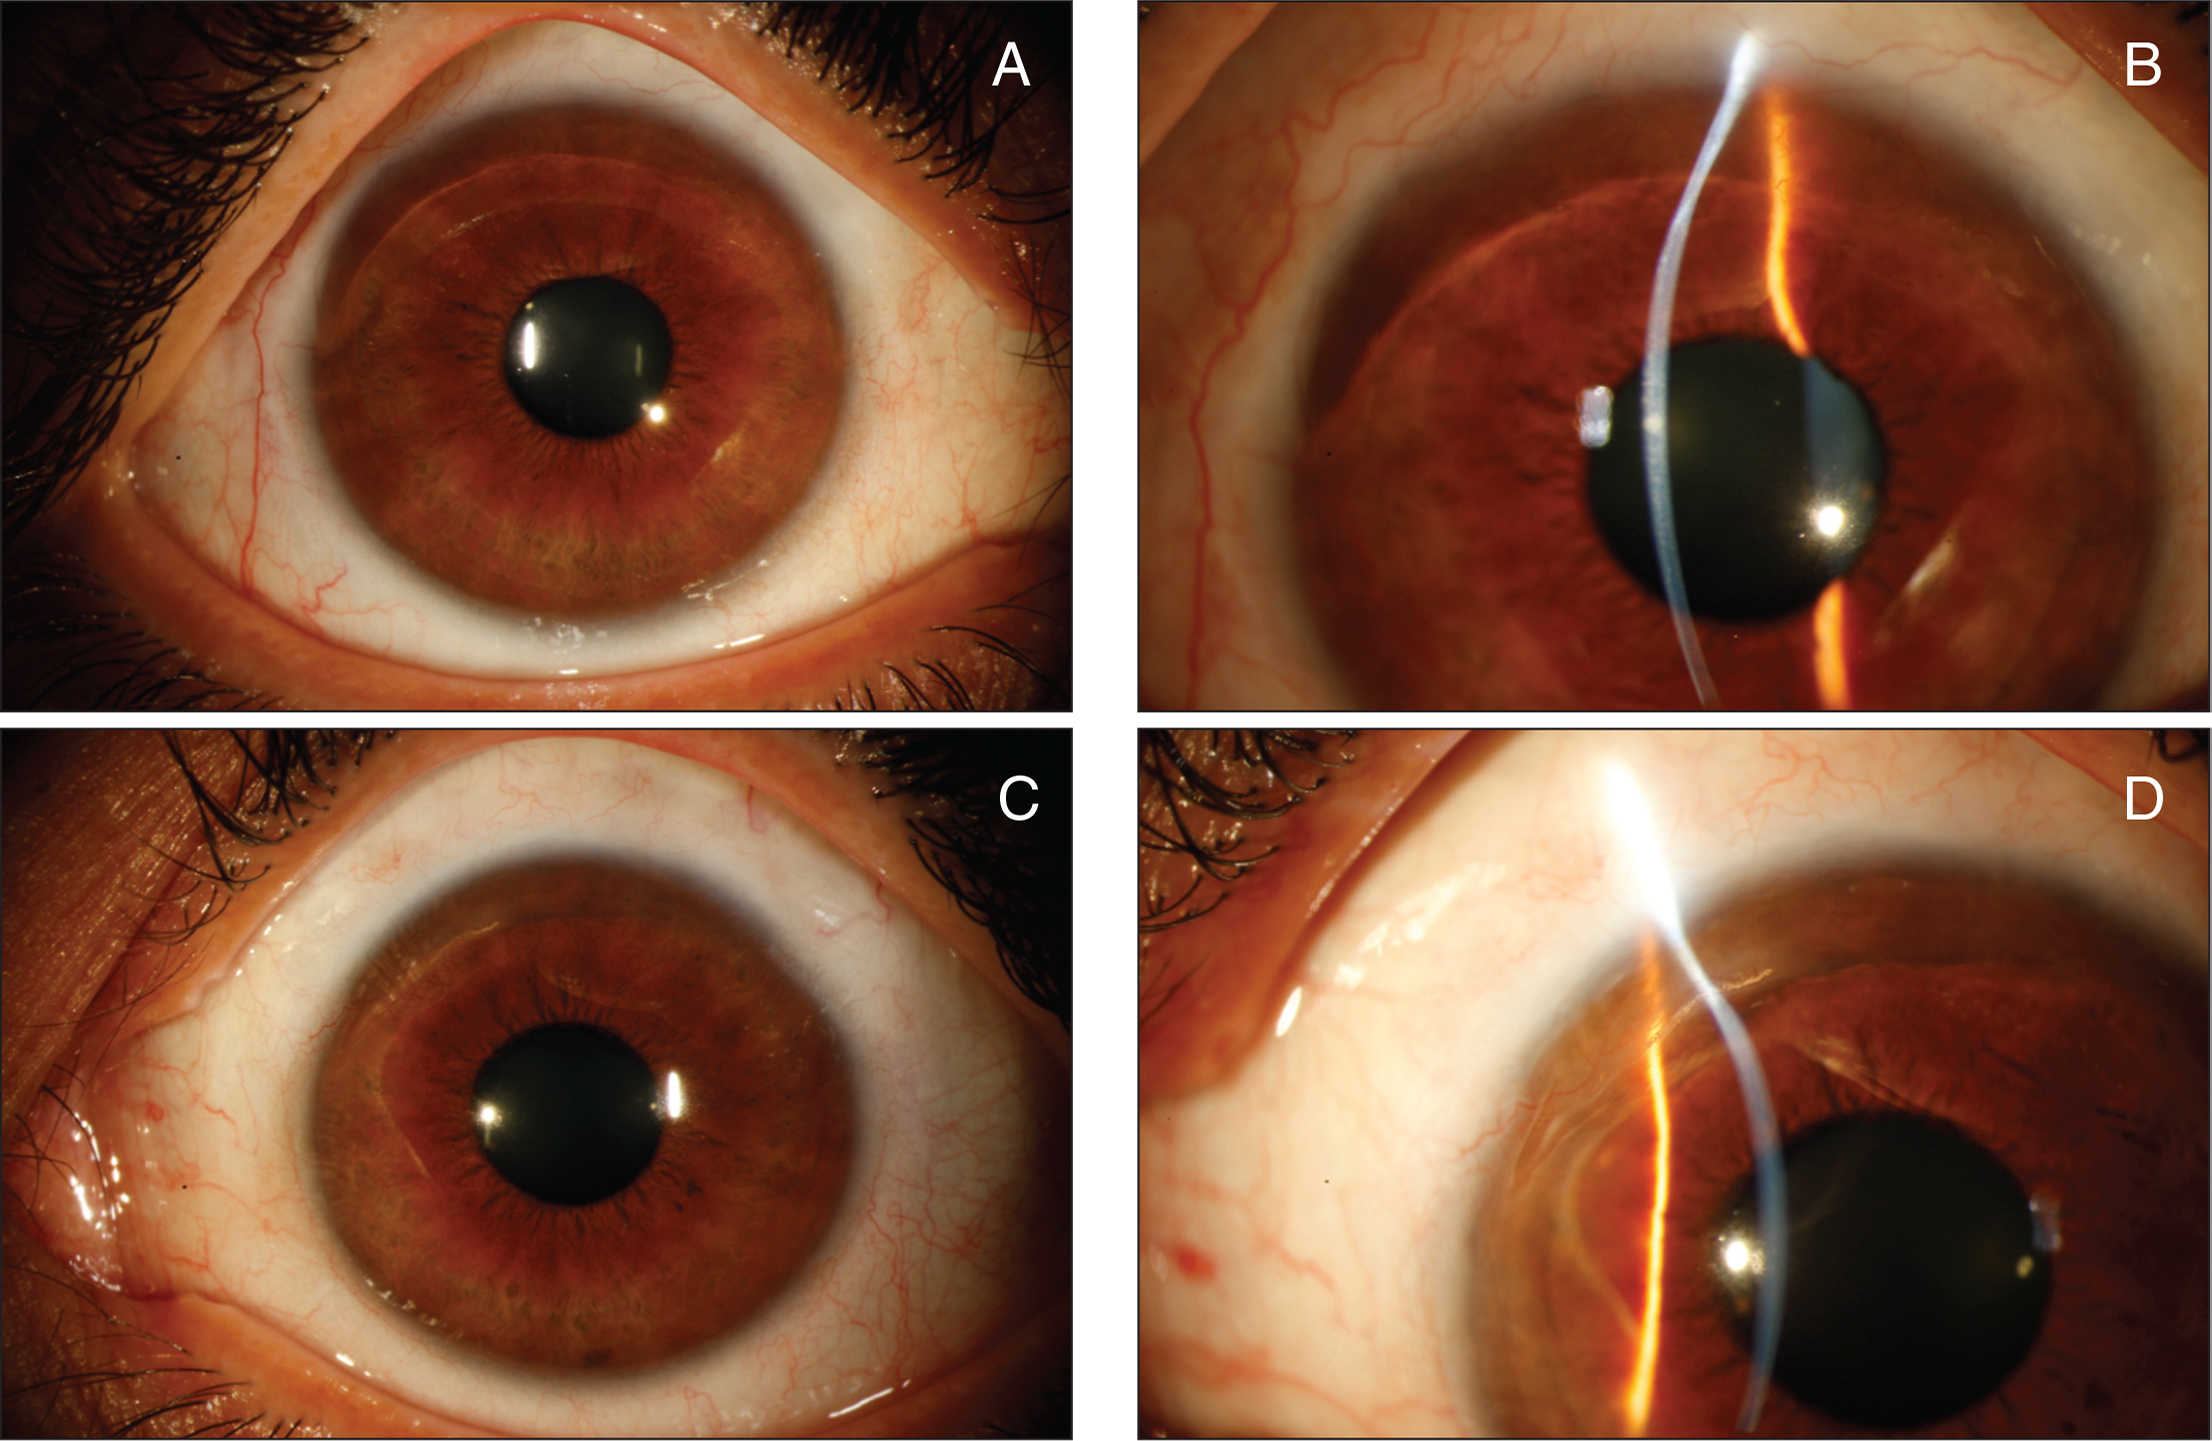 At the last follow-up visit, (A, B) 10 years after corneal cross-linking in the right eye and (C, D) 5 years after corneal cross-linking in the left eye, slit-lamp examination showed a stable thinning of the superior peripheral cornea in both eyes, with no signs of progression of the disease.